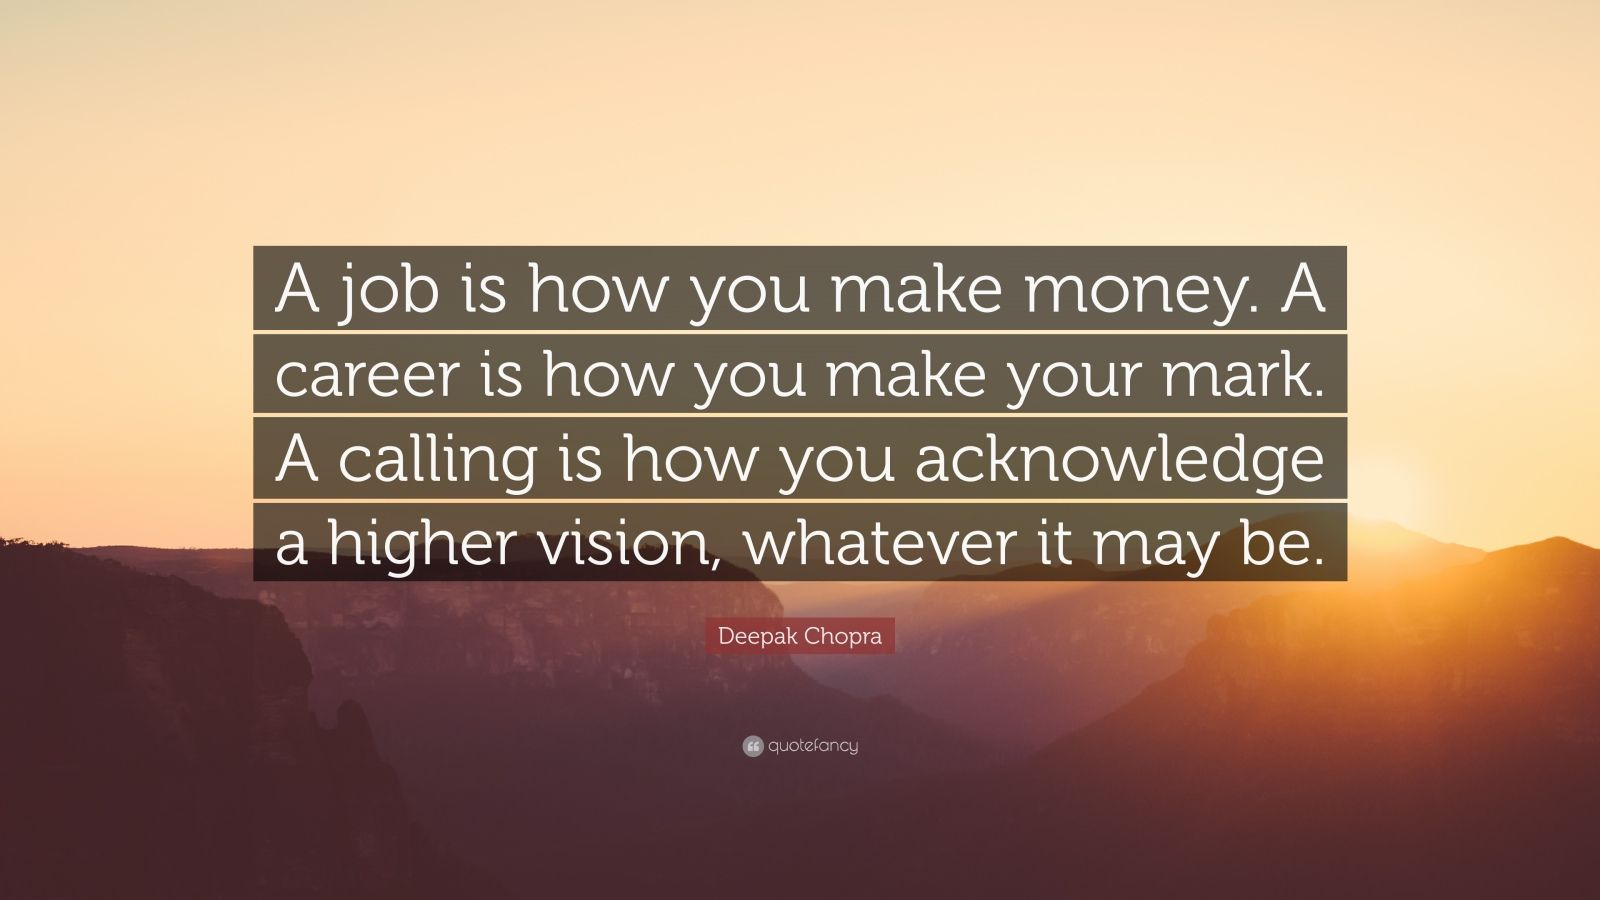 """Deepak Chopra Quote: """"A job is how you make money. A career is how you make your mark. A calling is how you acknowledge a higher vision, whatever it may be."""""""